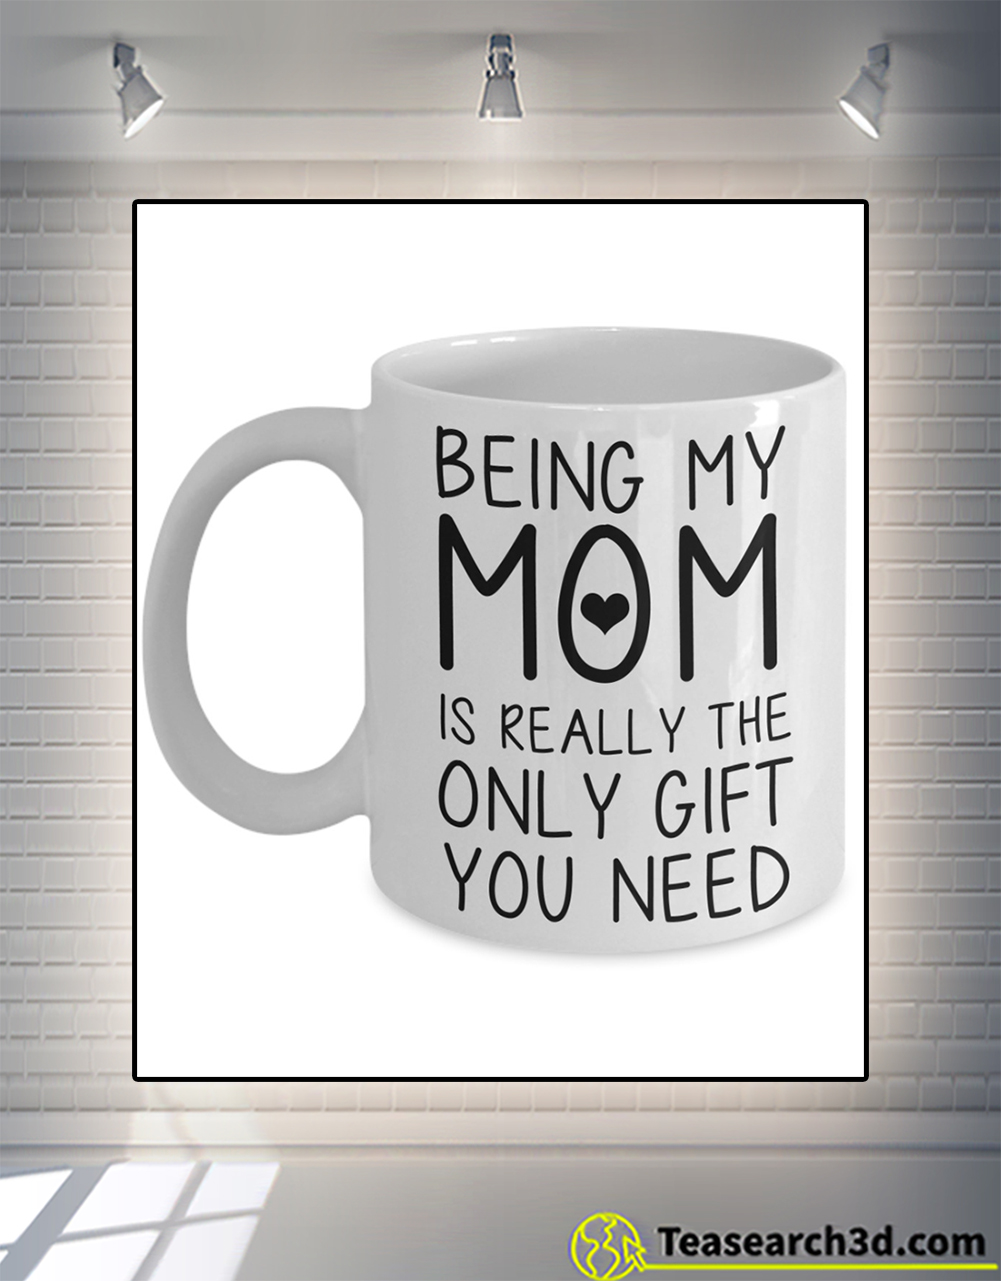 Being my mom is really the only gift you need mug